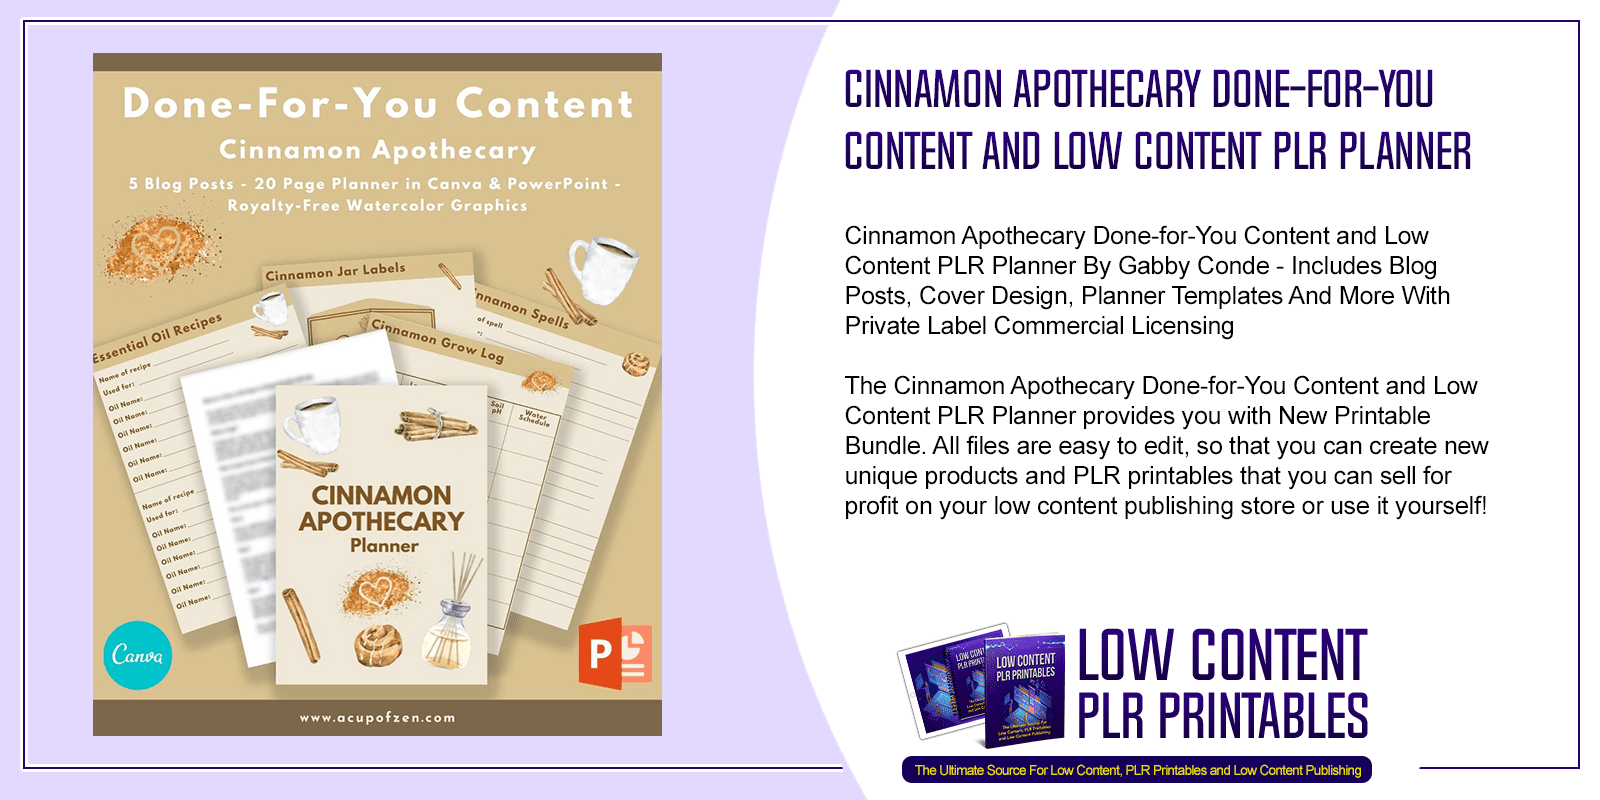 Cinnamon Apothecary Done for You Content and Low Content PLR Planner